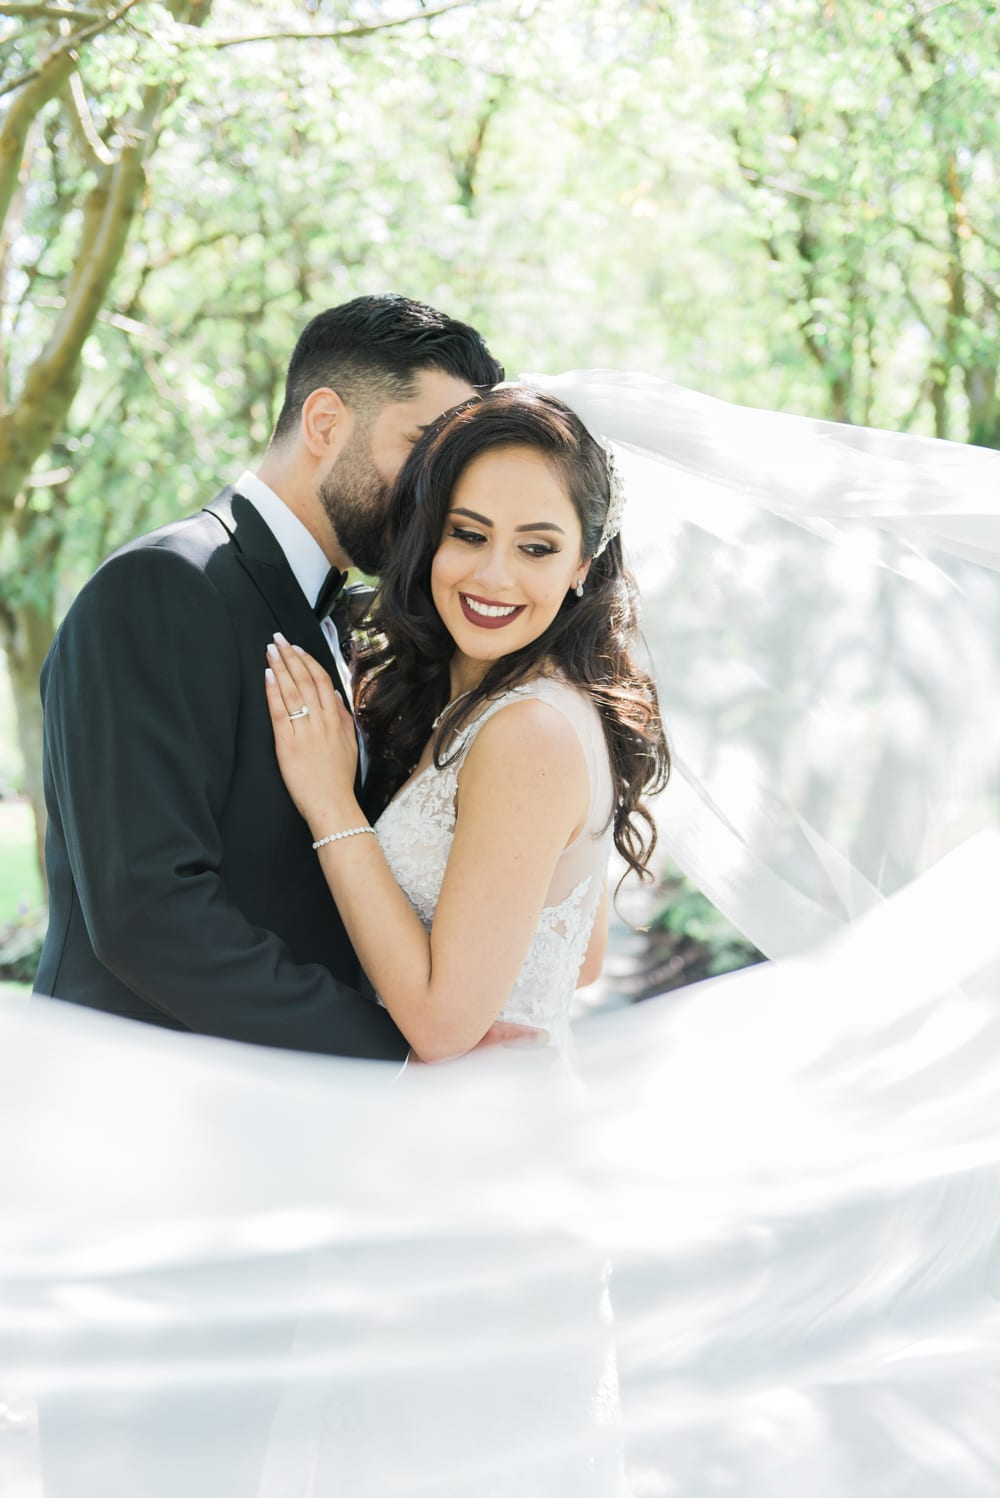 A Vintage Persian Wedding in Vancouver - Couple outside